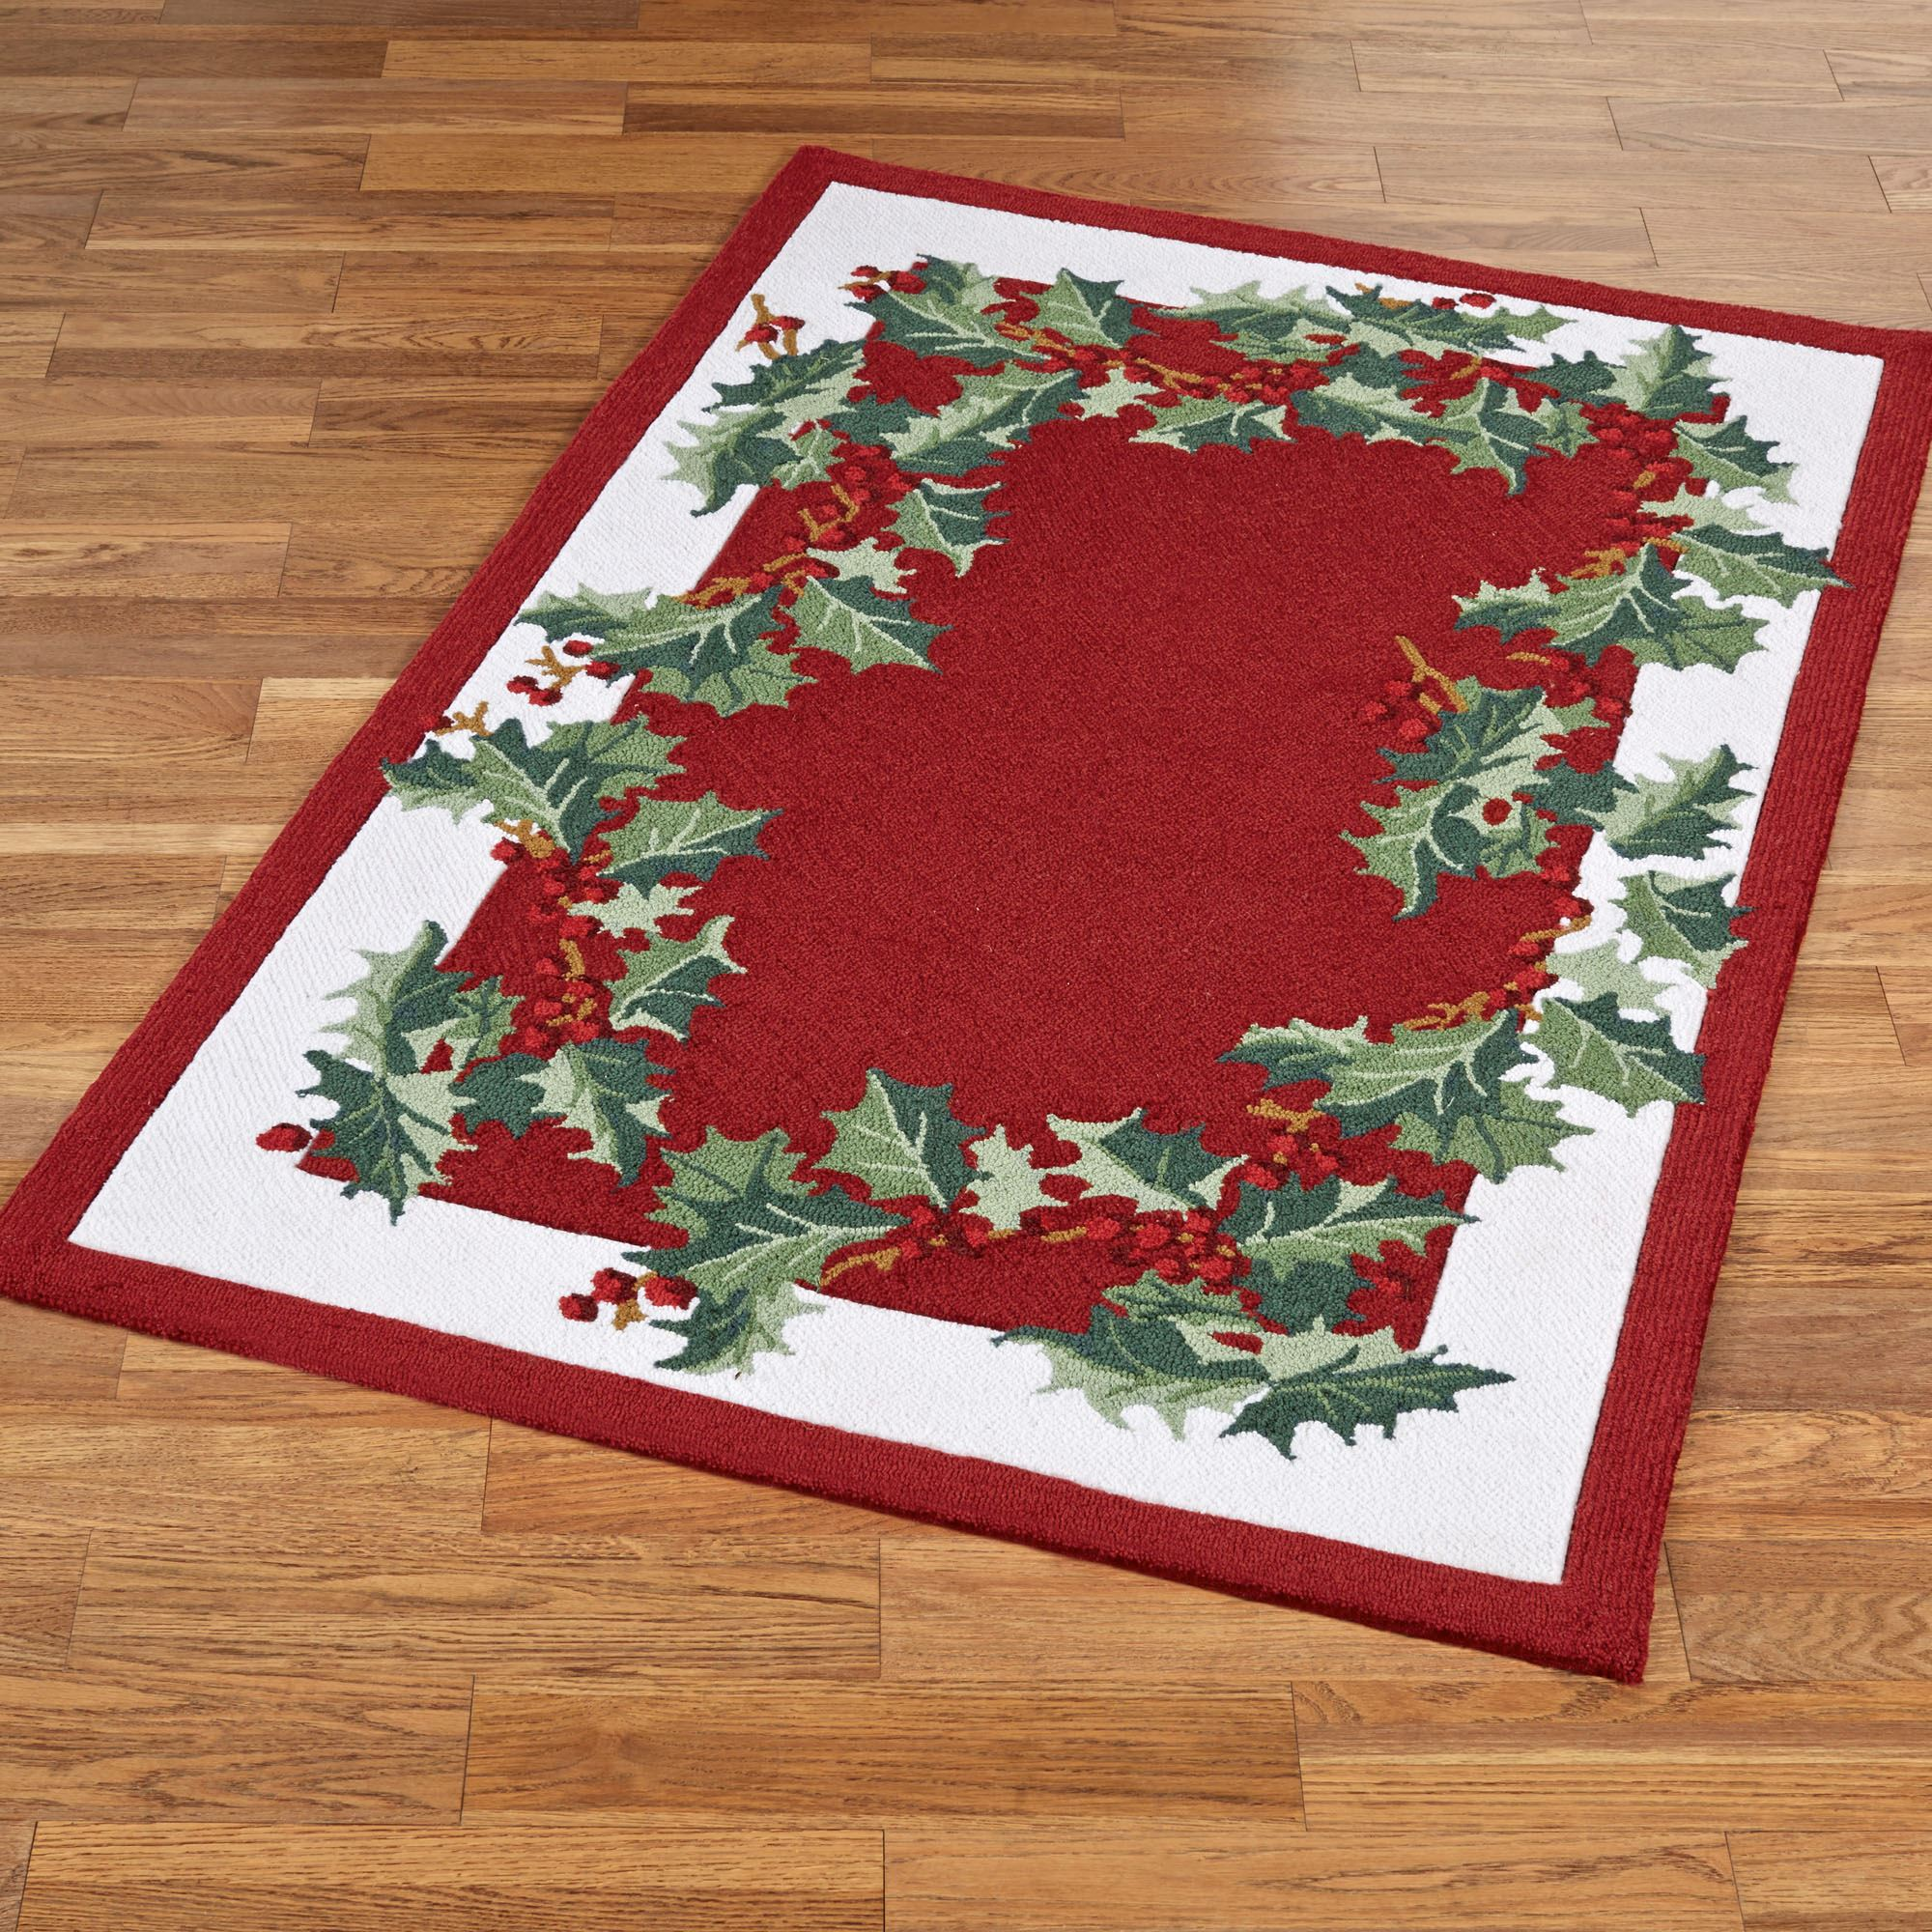 Christmas Runner Rugs.Holly Border Hooked Holiday Area Rugs